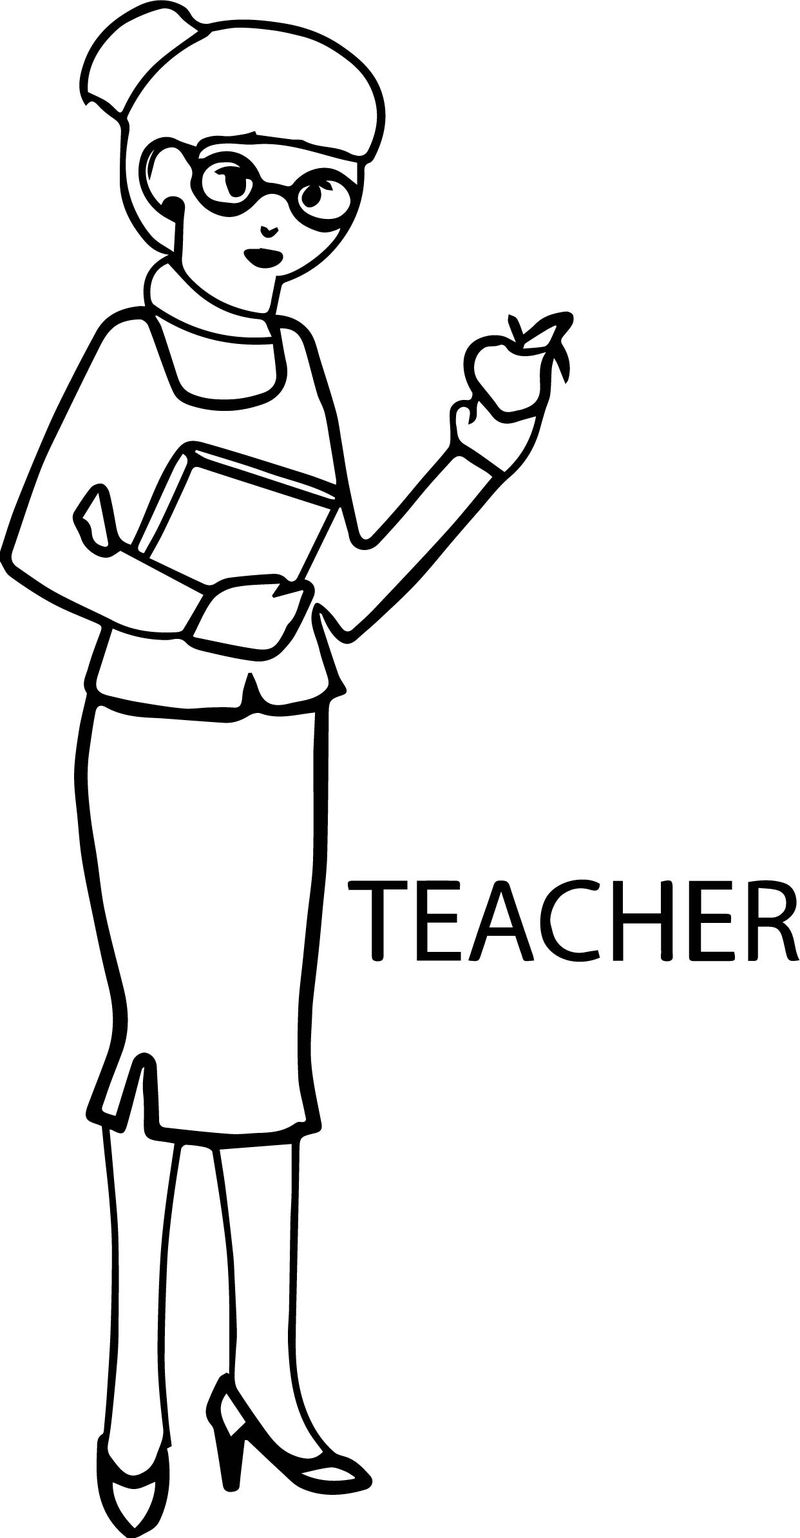 English Woman Teacher And Apple Coloring Page